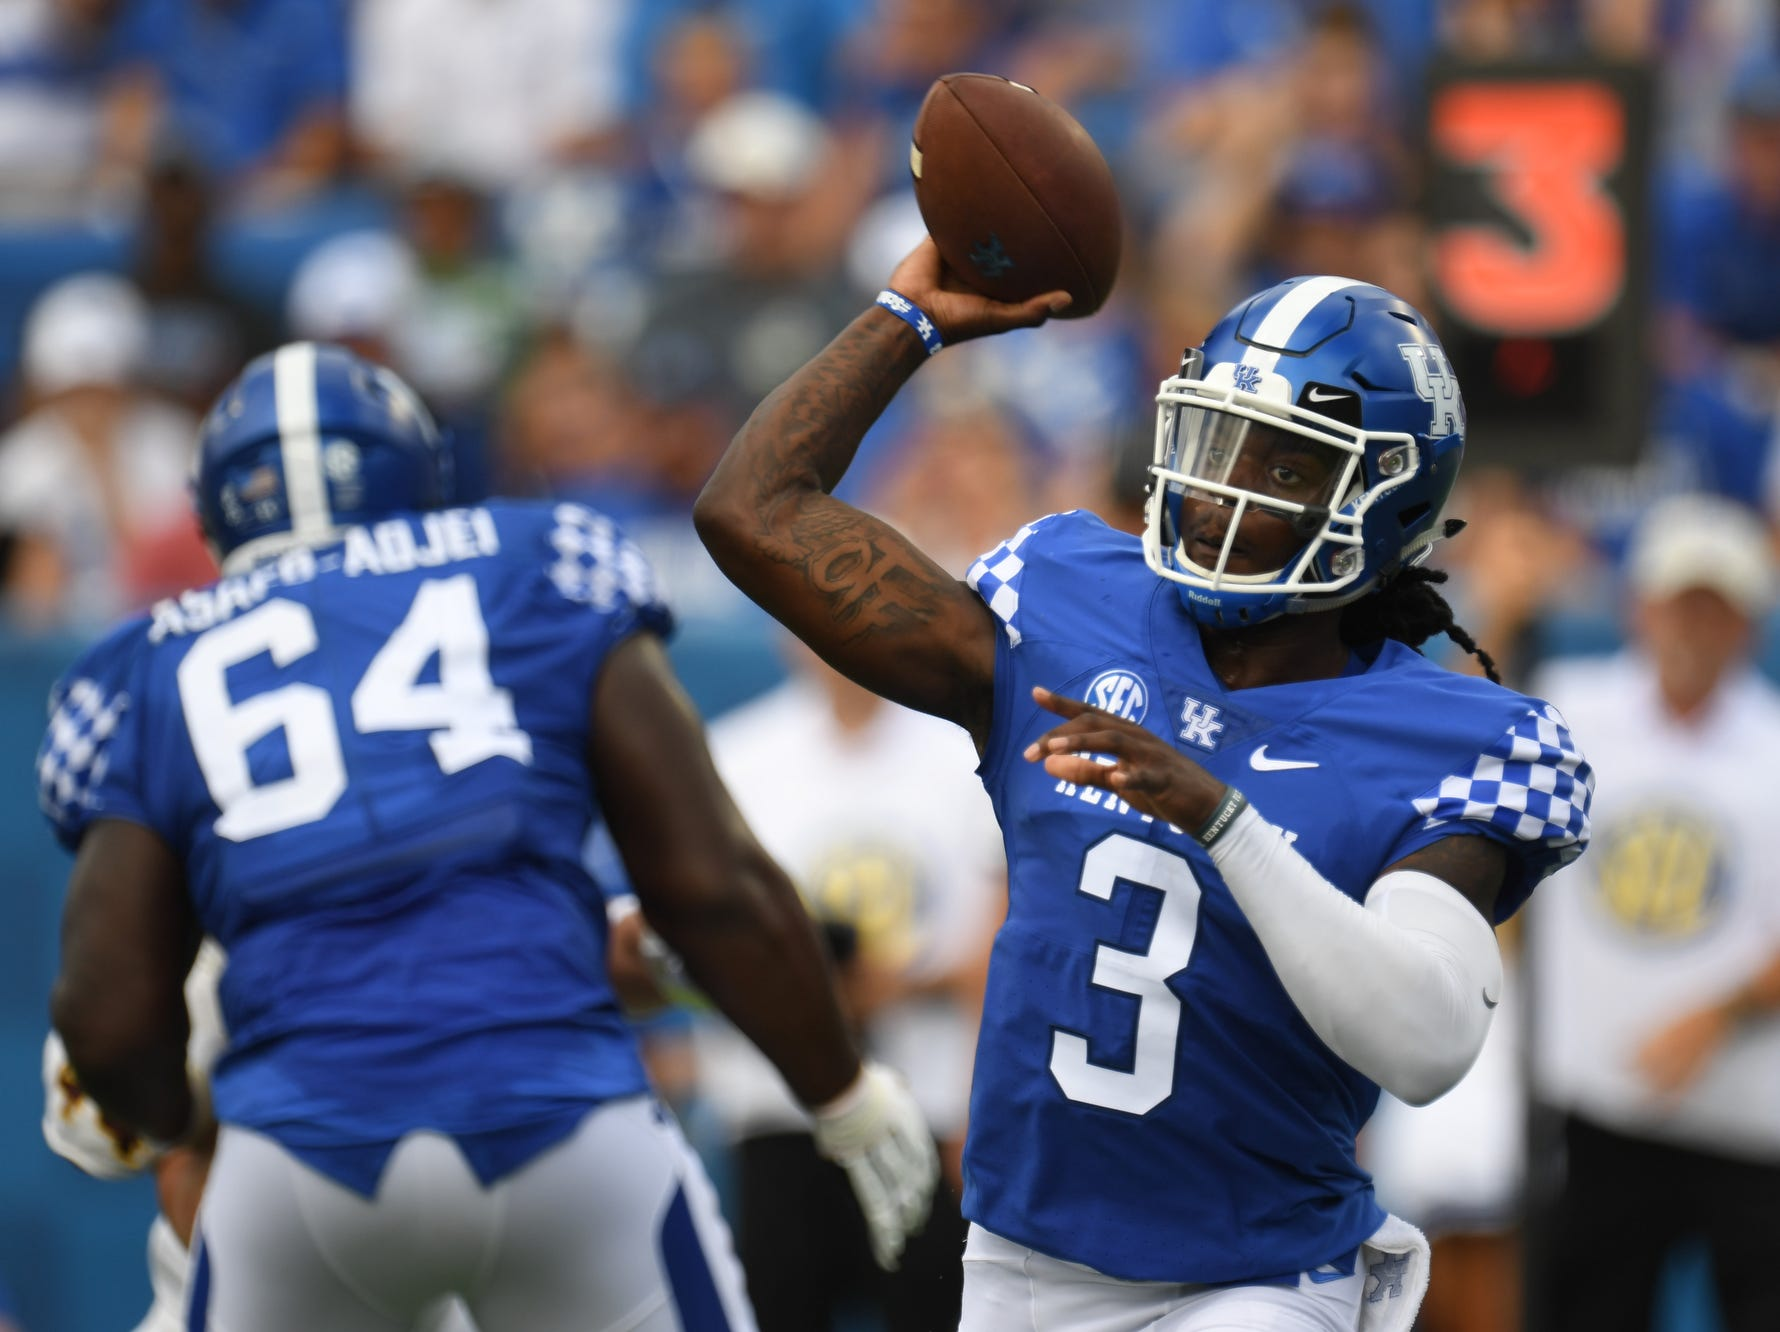 UK QB Terry Wilson throws during the University of Kentucky football game against Central Michigan at Kroger Field in Lexington, Kentucky on Saturday, September 1, 2018.